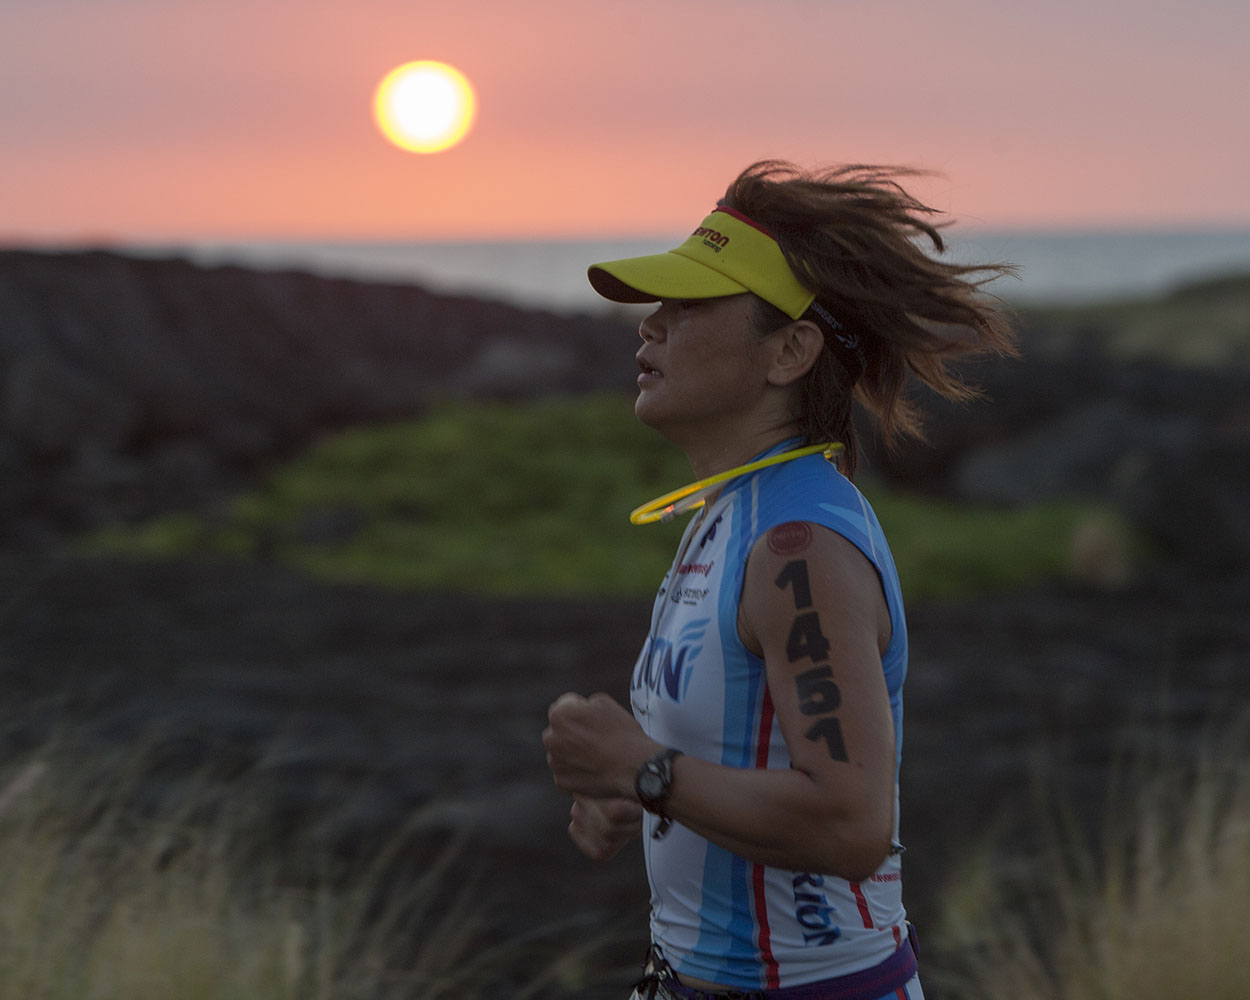 As the sun sets, Kaoru Suzuki runs the marathon during the 2014 IRONMAN World Championship.